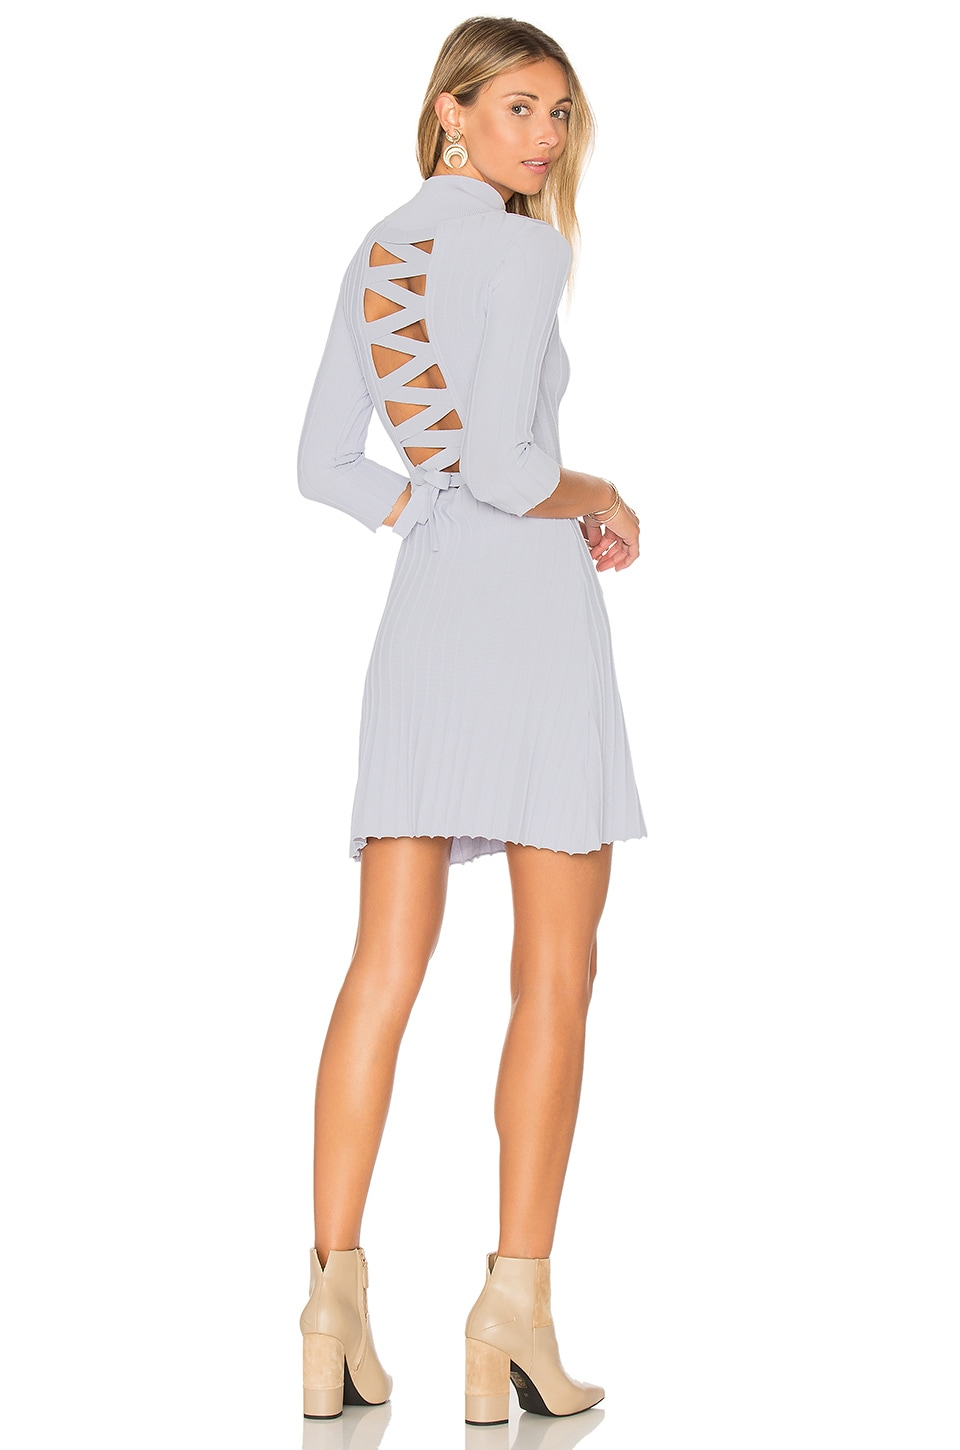 x KNITZ Simone Laced Back Sweater Dress